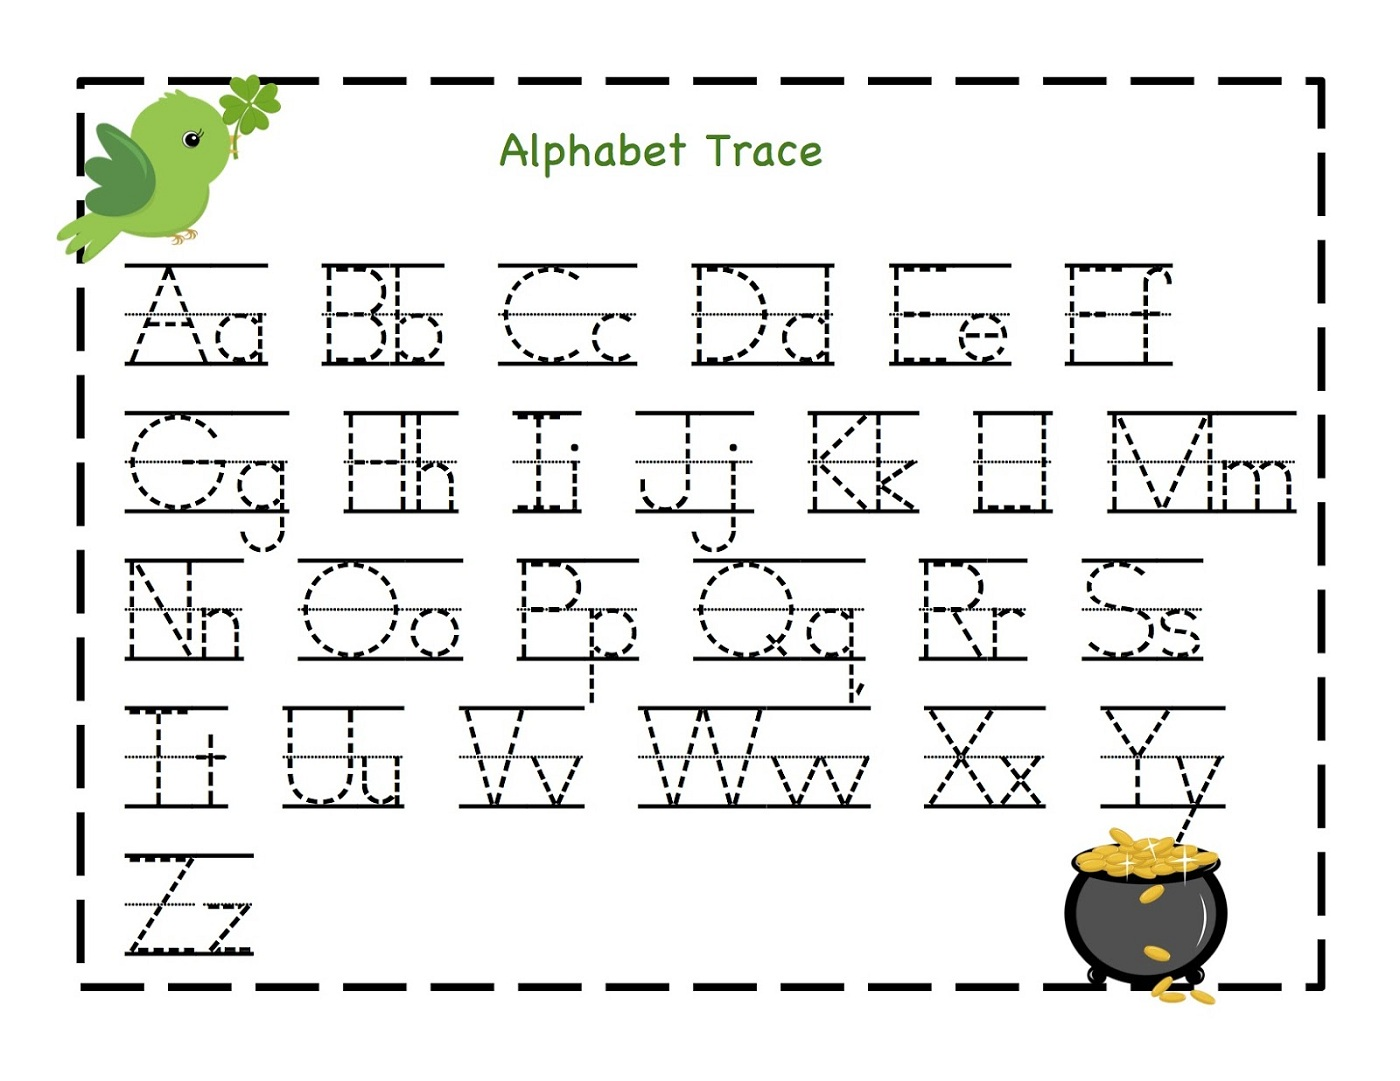 Uncategorized Kindergarten Printable Worksheets alphabet worksheet for kg free worksheets reviewrevitol 604780 printable kindergarten scalien kindergarten